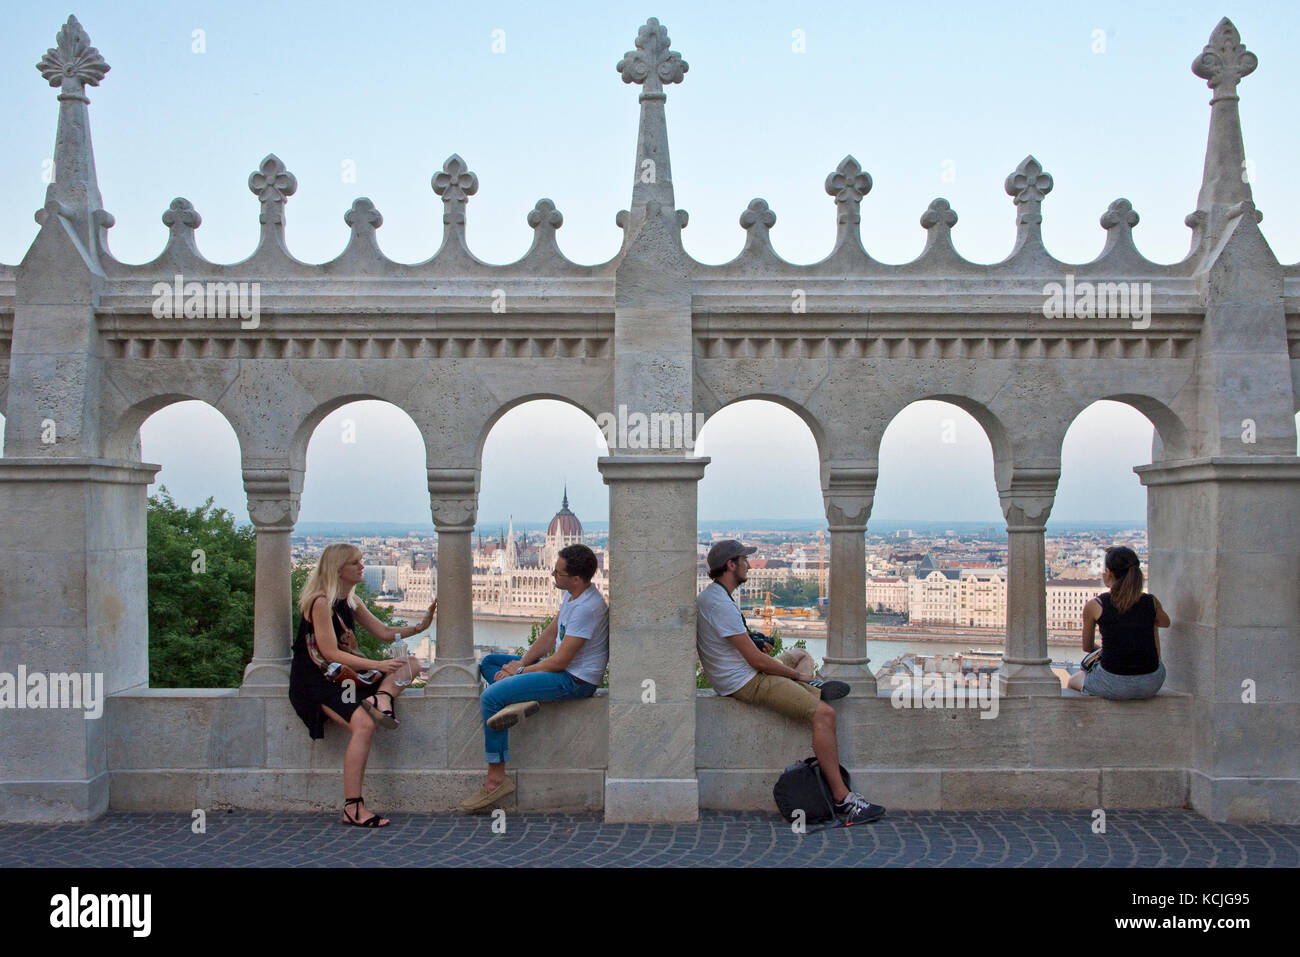 Four 4 people, two 2 couples tourists on the walls of the Fisherman's Bastion admiring the view of Budapest - Stock Image